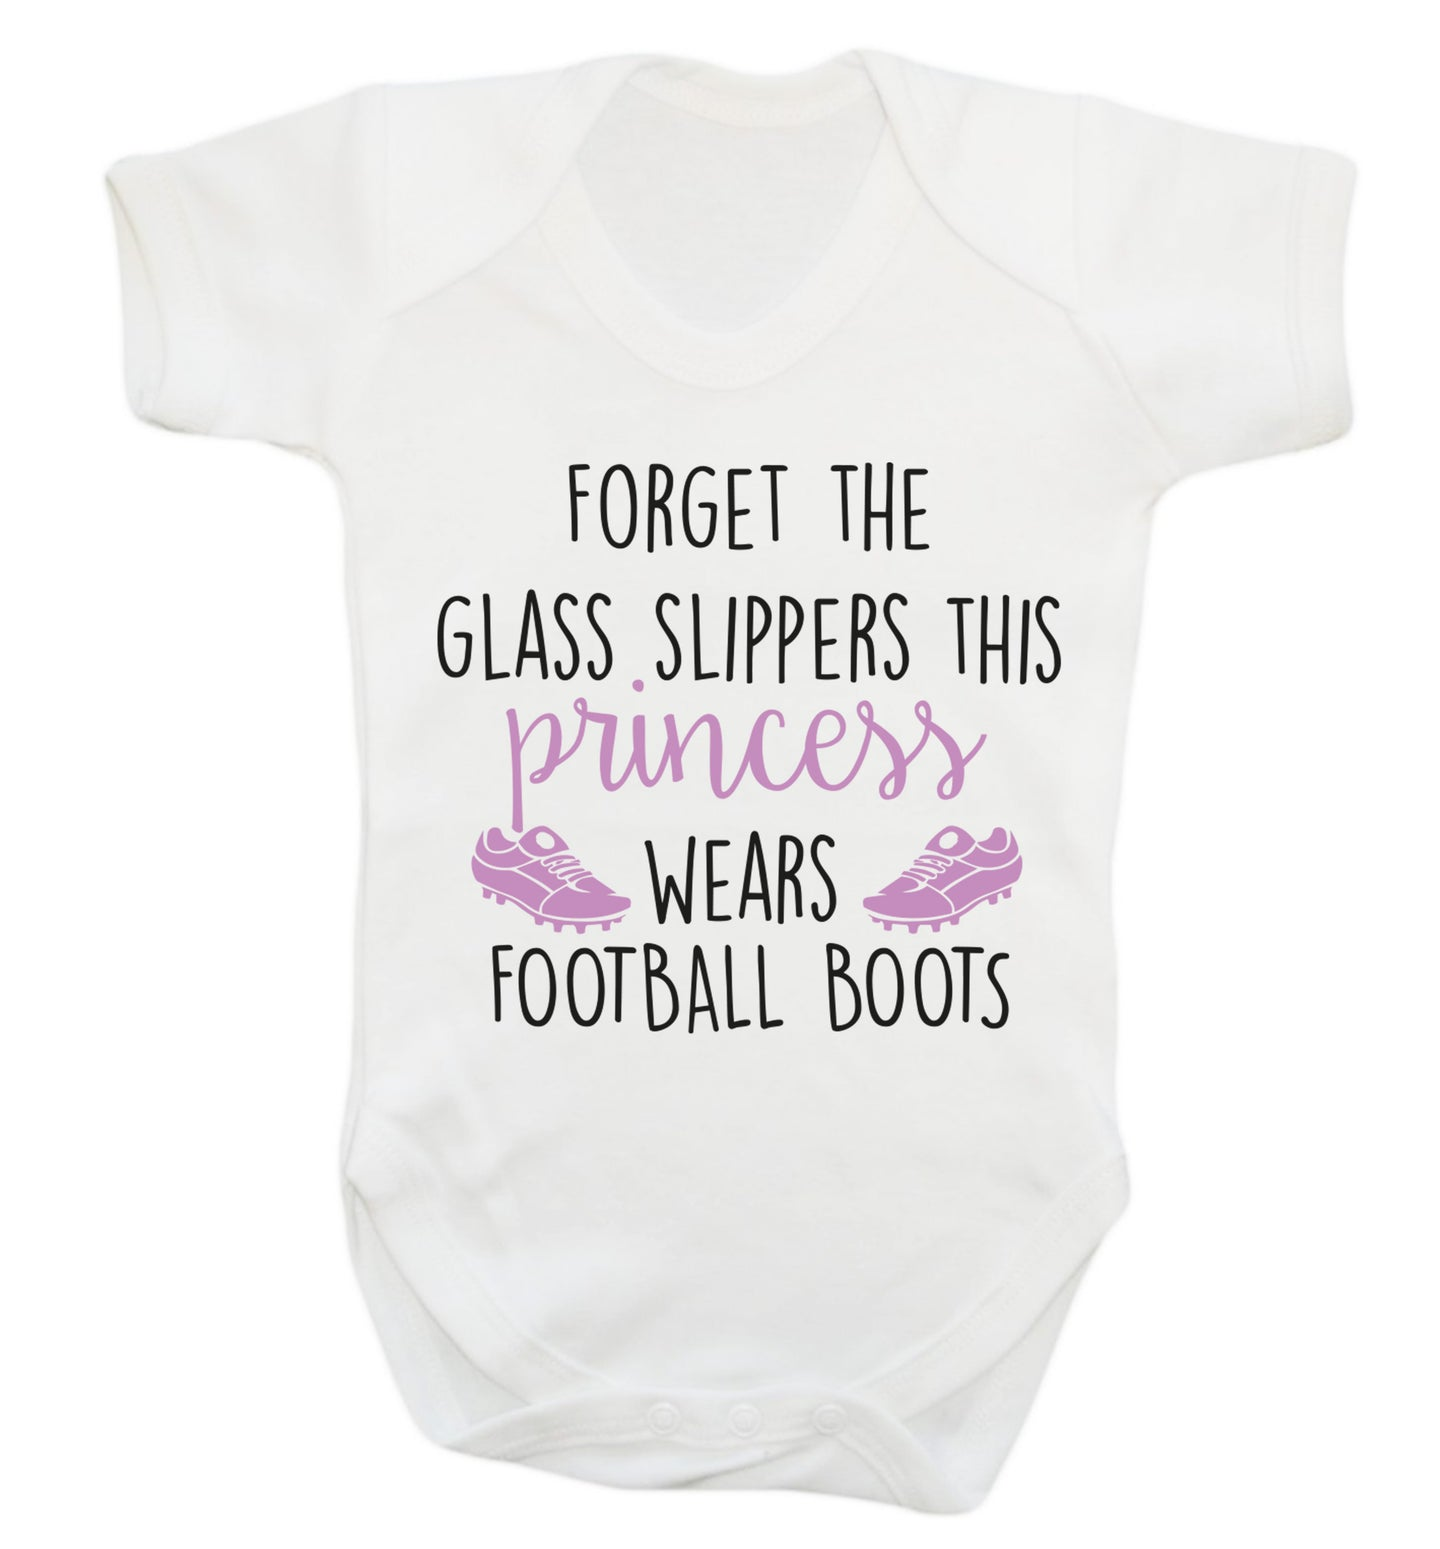 Forget the glass slippers this princess wears football boots Baby Vest white 18-24 months